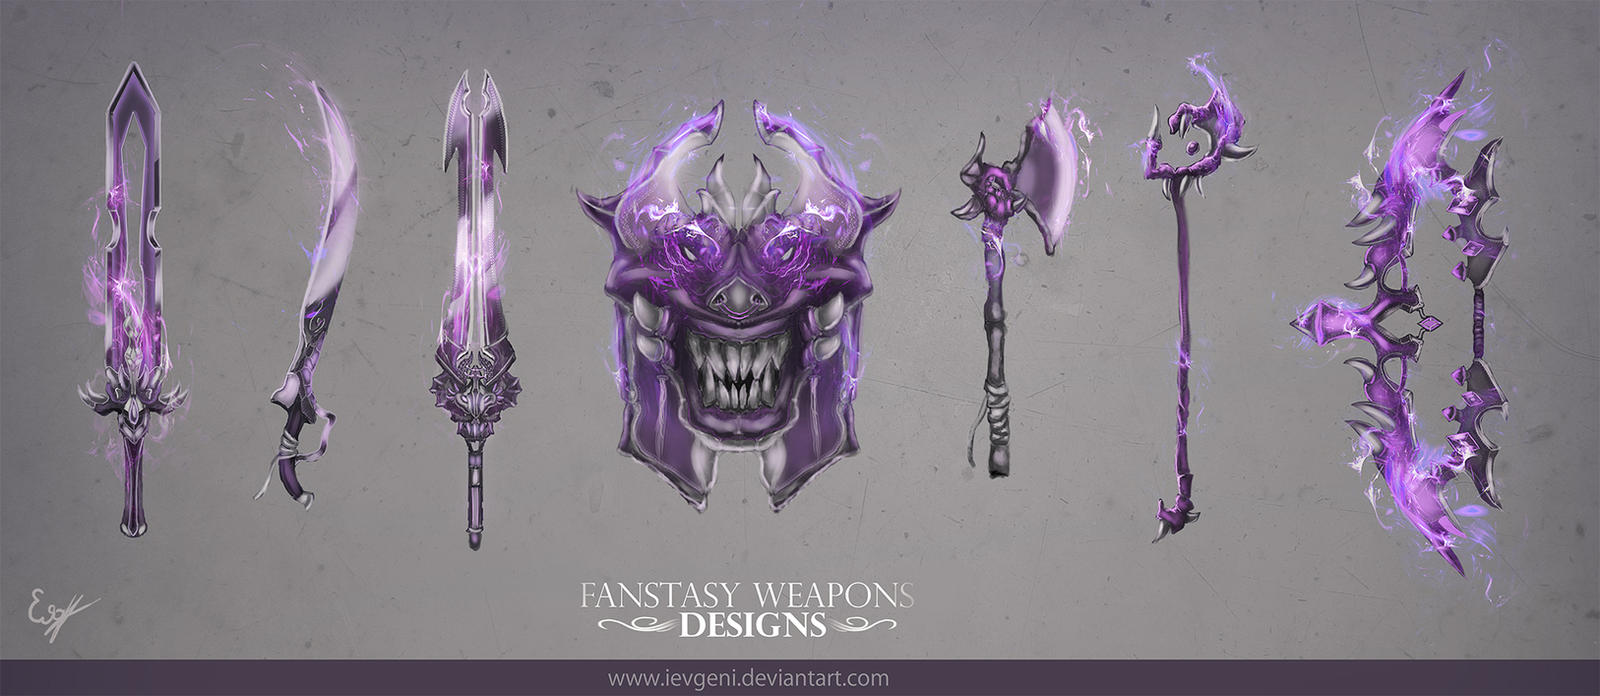 Fantasy weapons designs by iEvgeni on DeviantArt